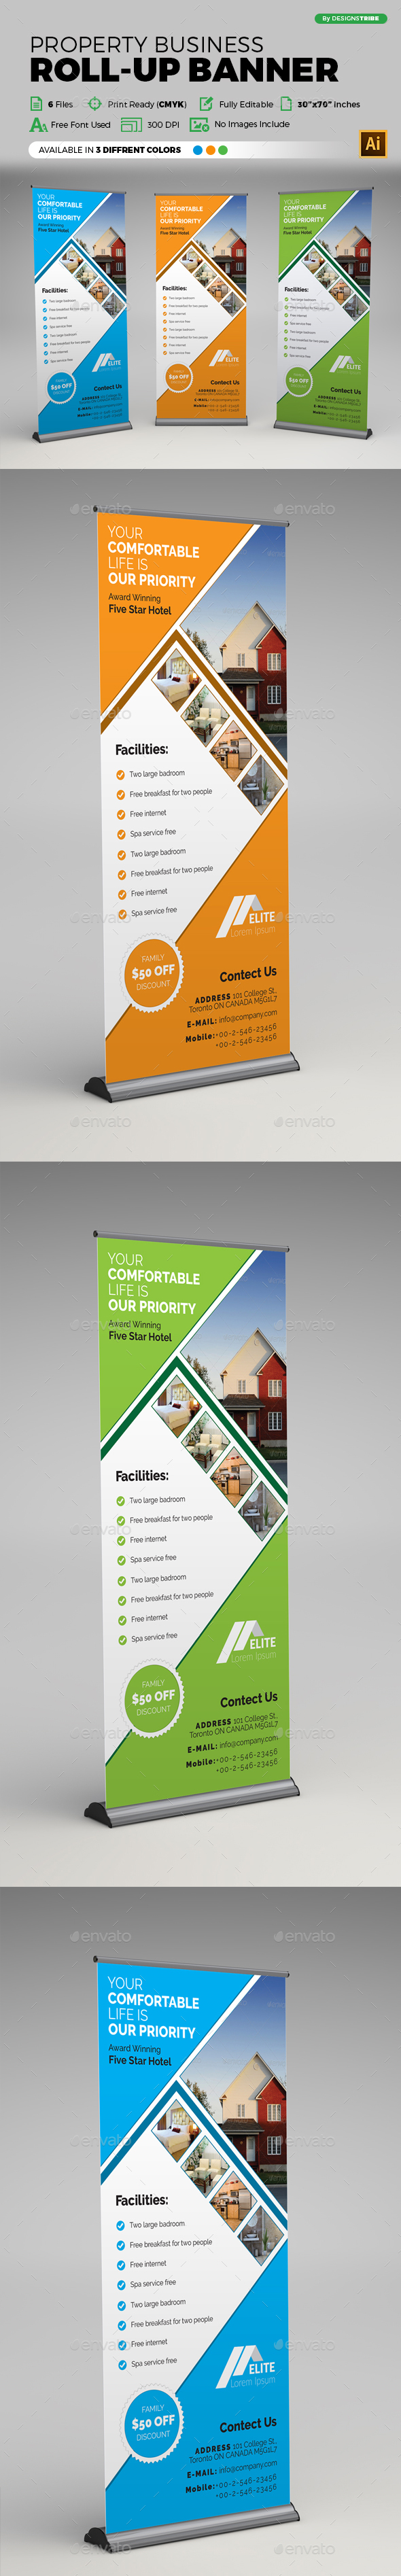 Property Business Roll-up Banner - Signage Print Templates